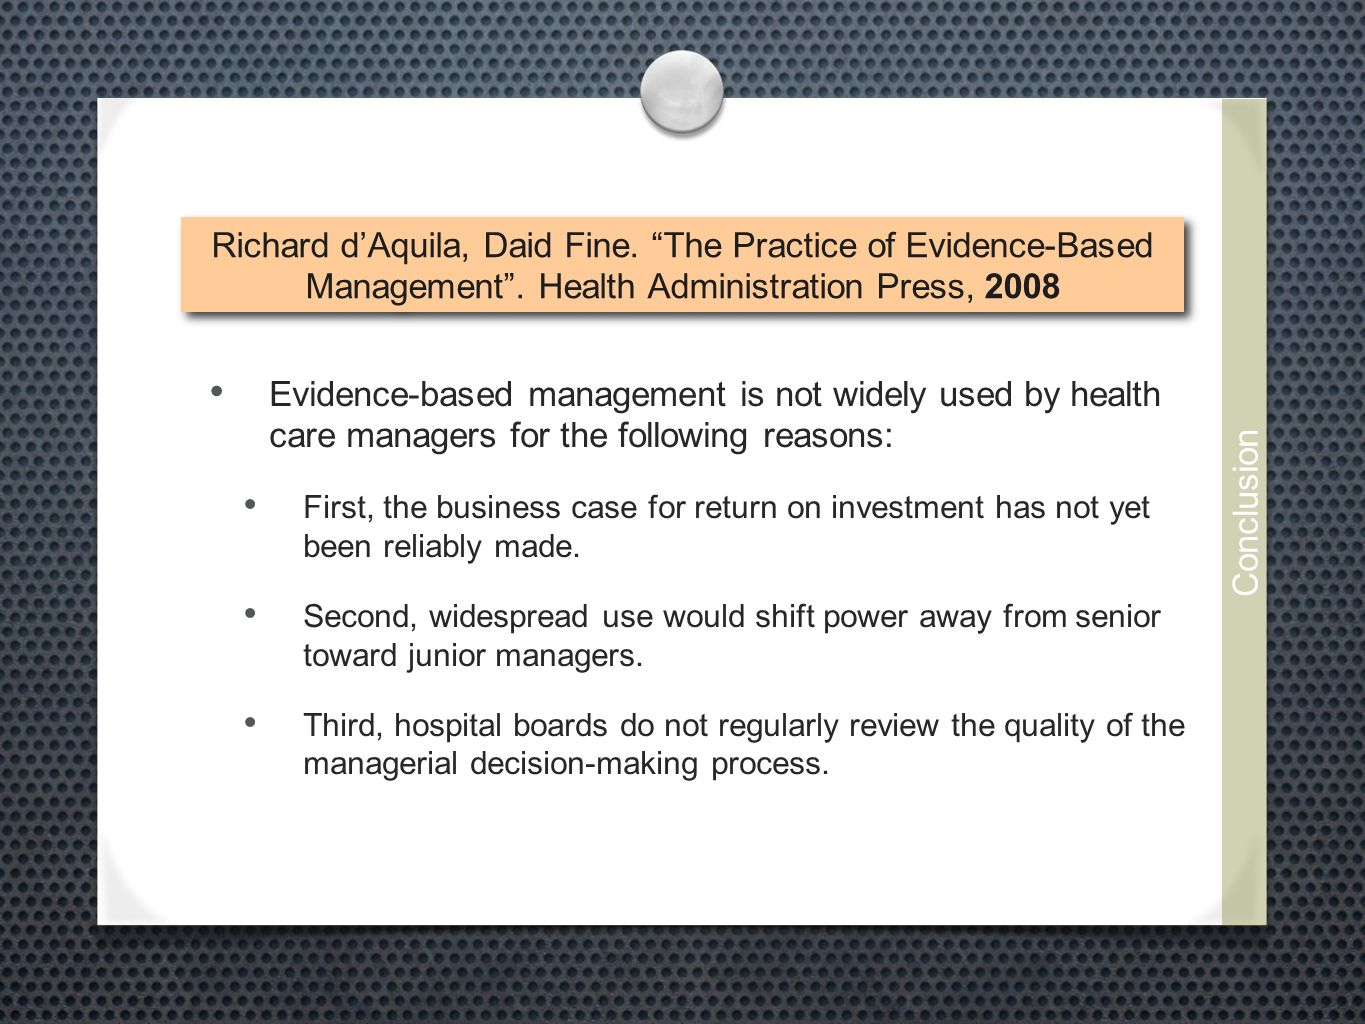 Evidence-based management is not widely used by health care managers for the following reasons: First, the business case for return on investment has